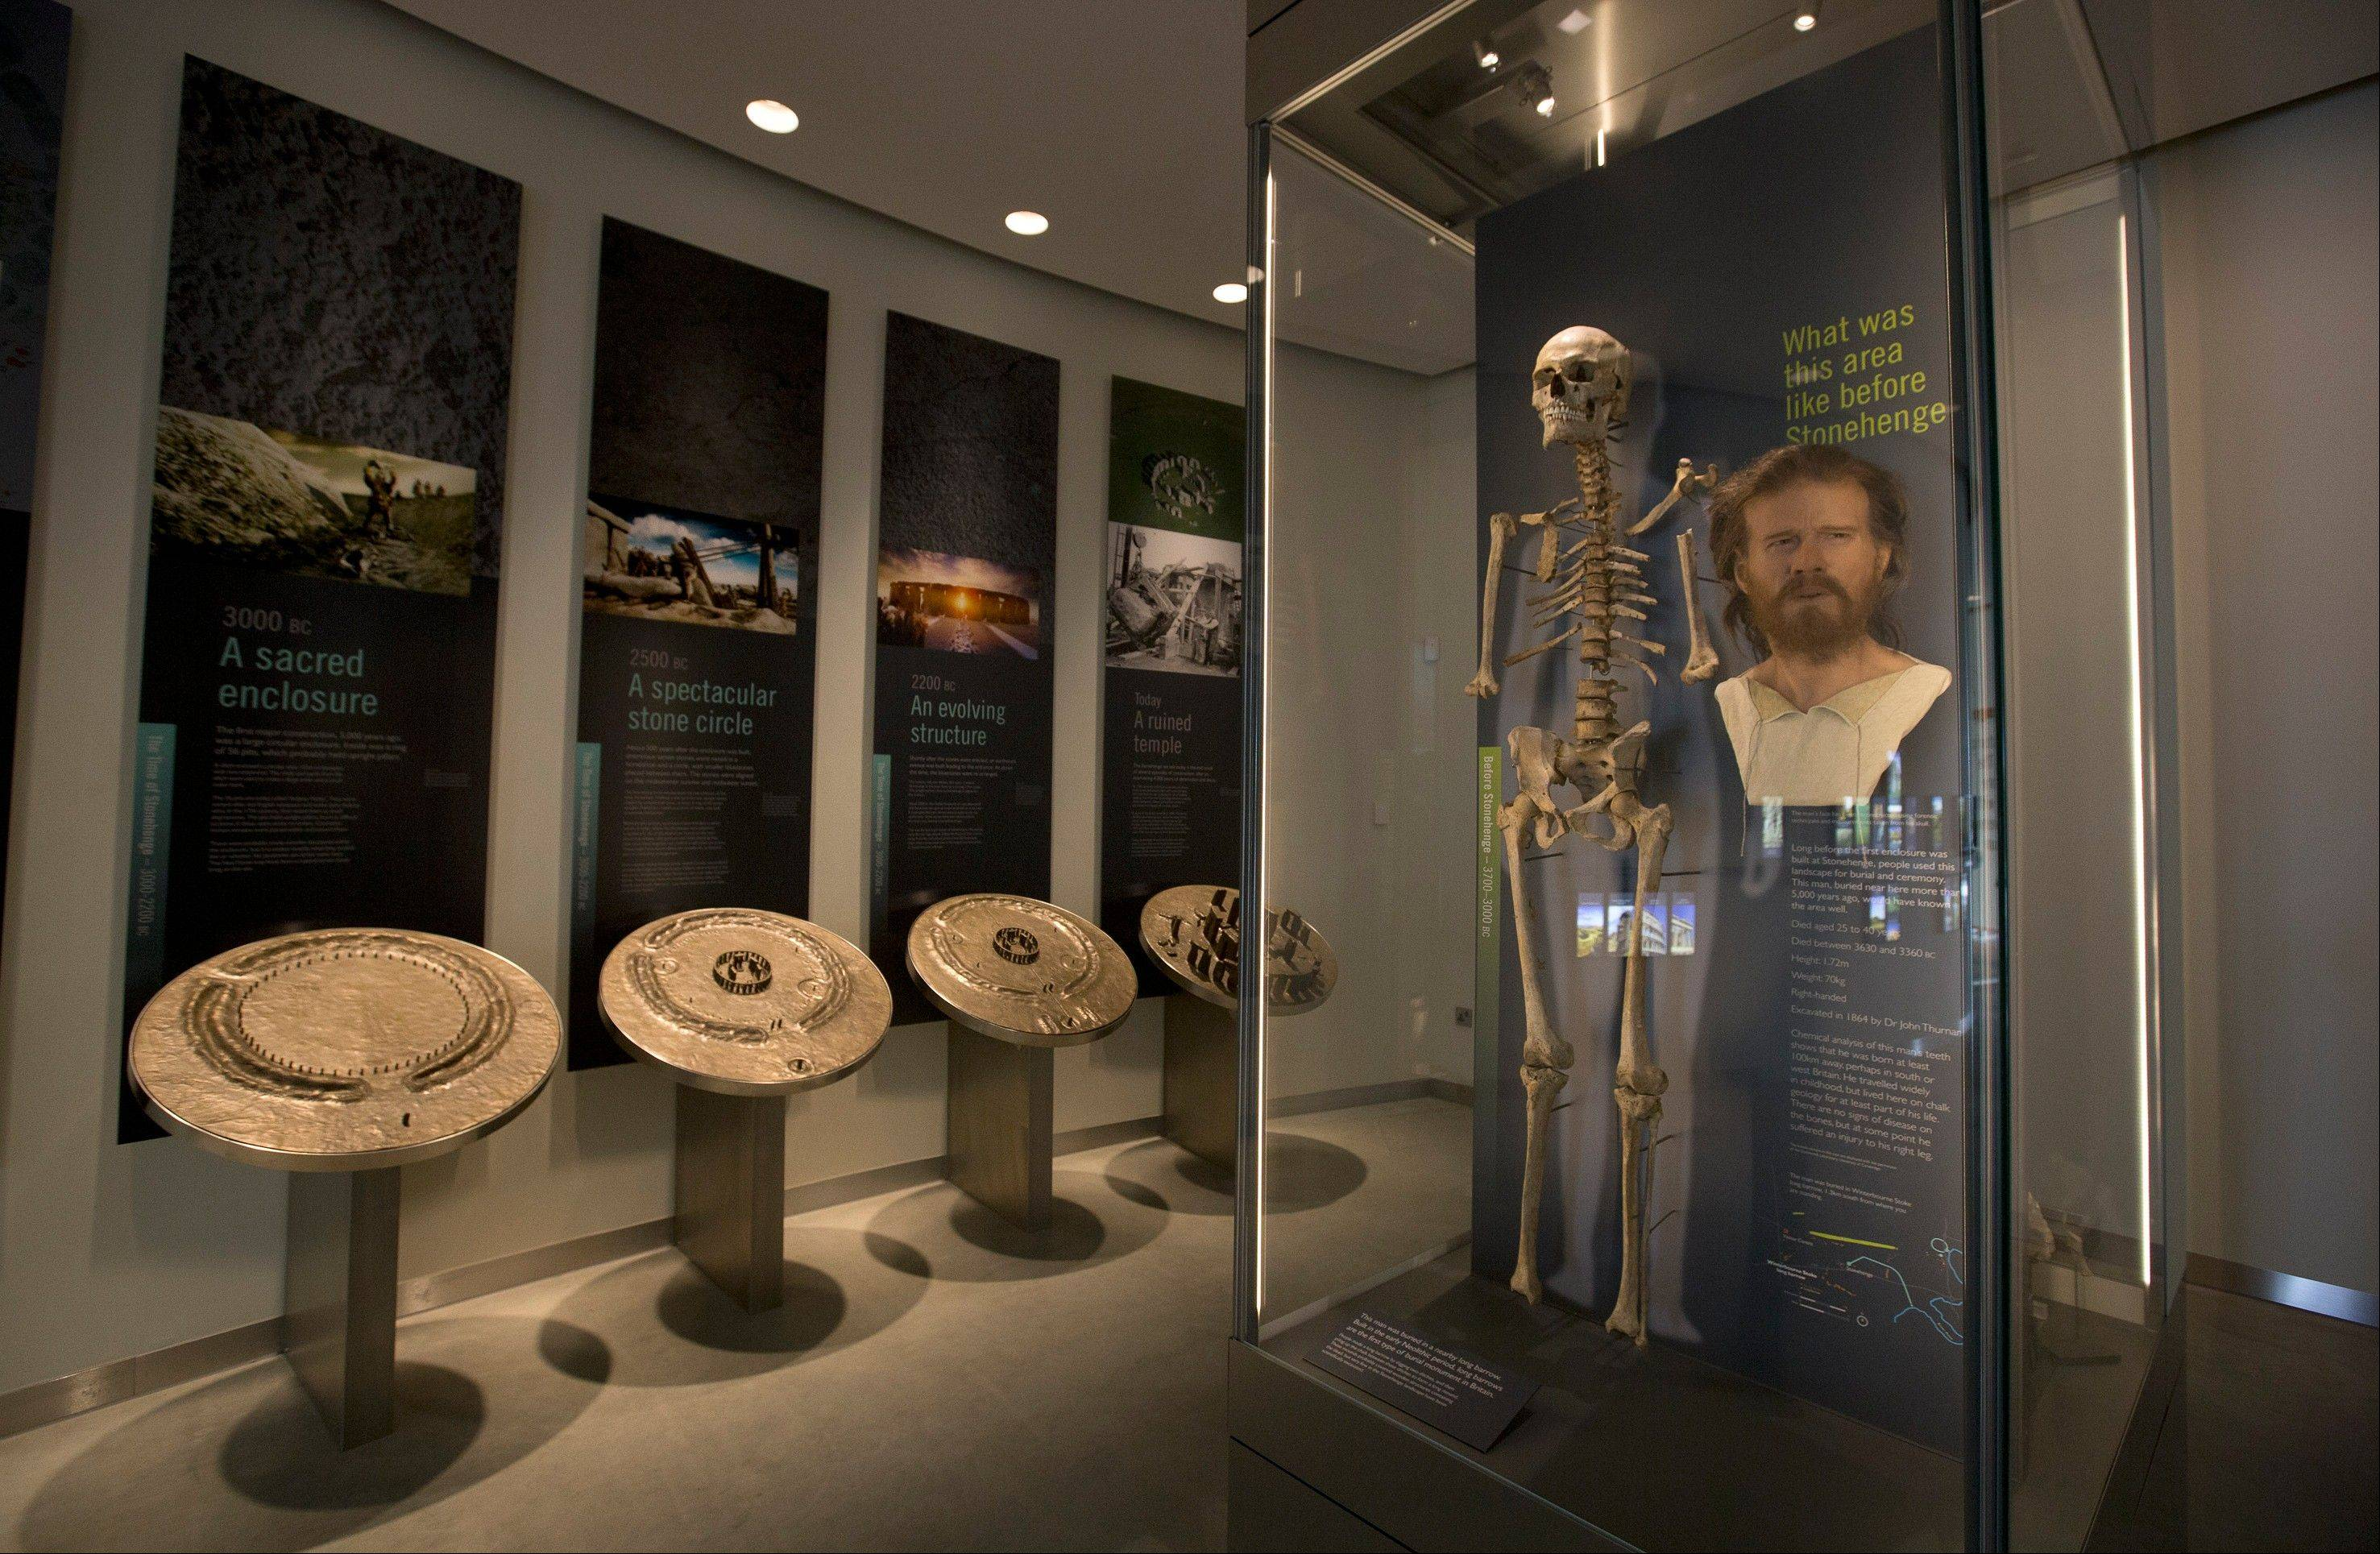 A forensic facial reconstruction taken from the skeleton of a man who is believed to have lived at the Stonehenge site at around 3630 BC is on display at the new visitor center at Stonehenge.